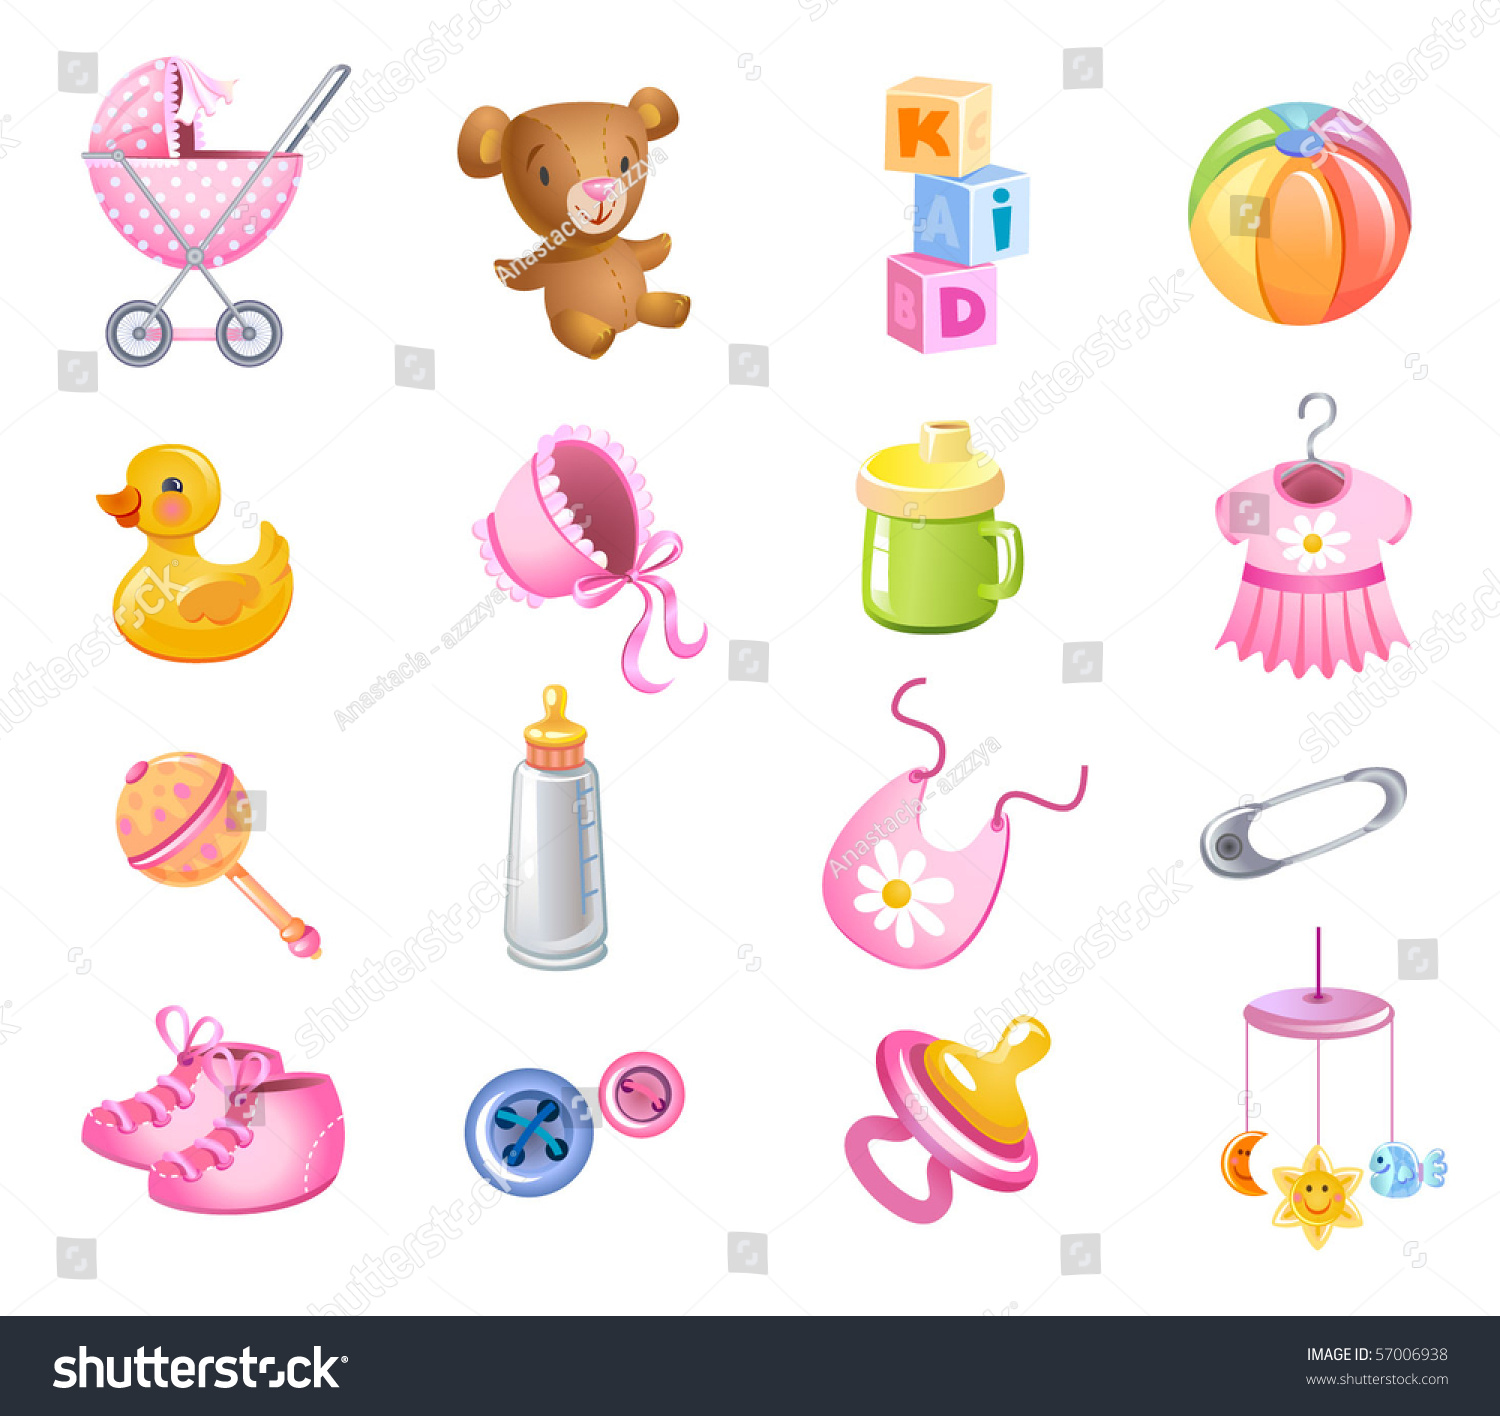 Girl Toys Clip Art : Set of toys and accessories for baby girl stock vector